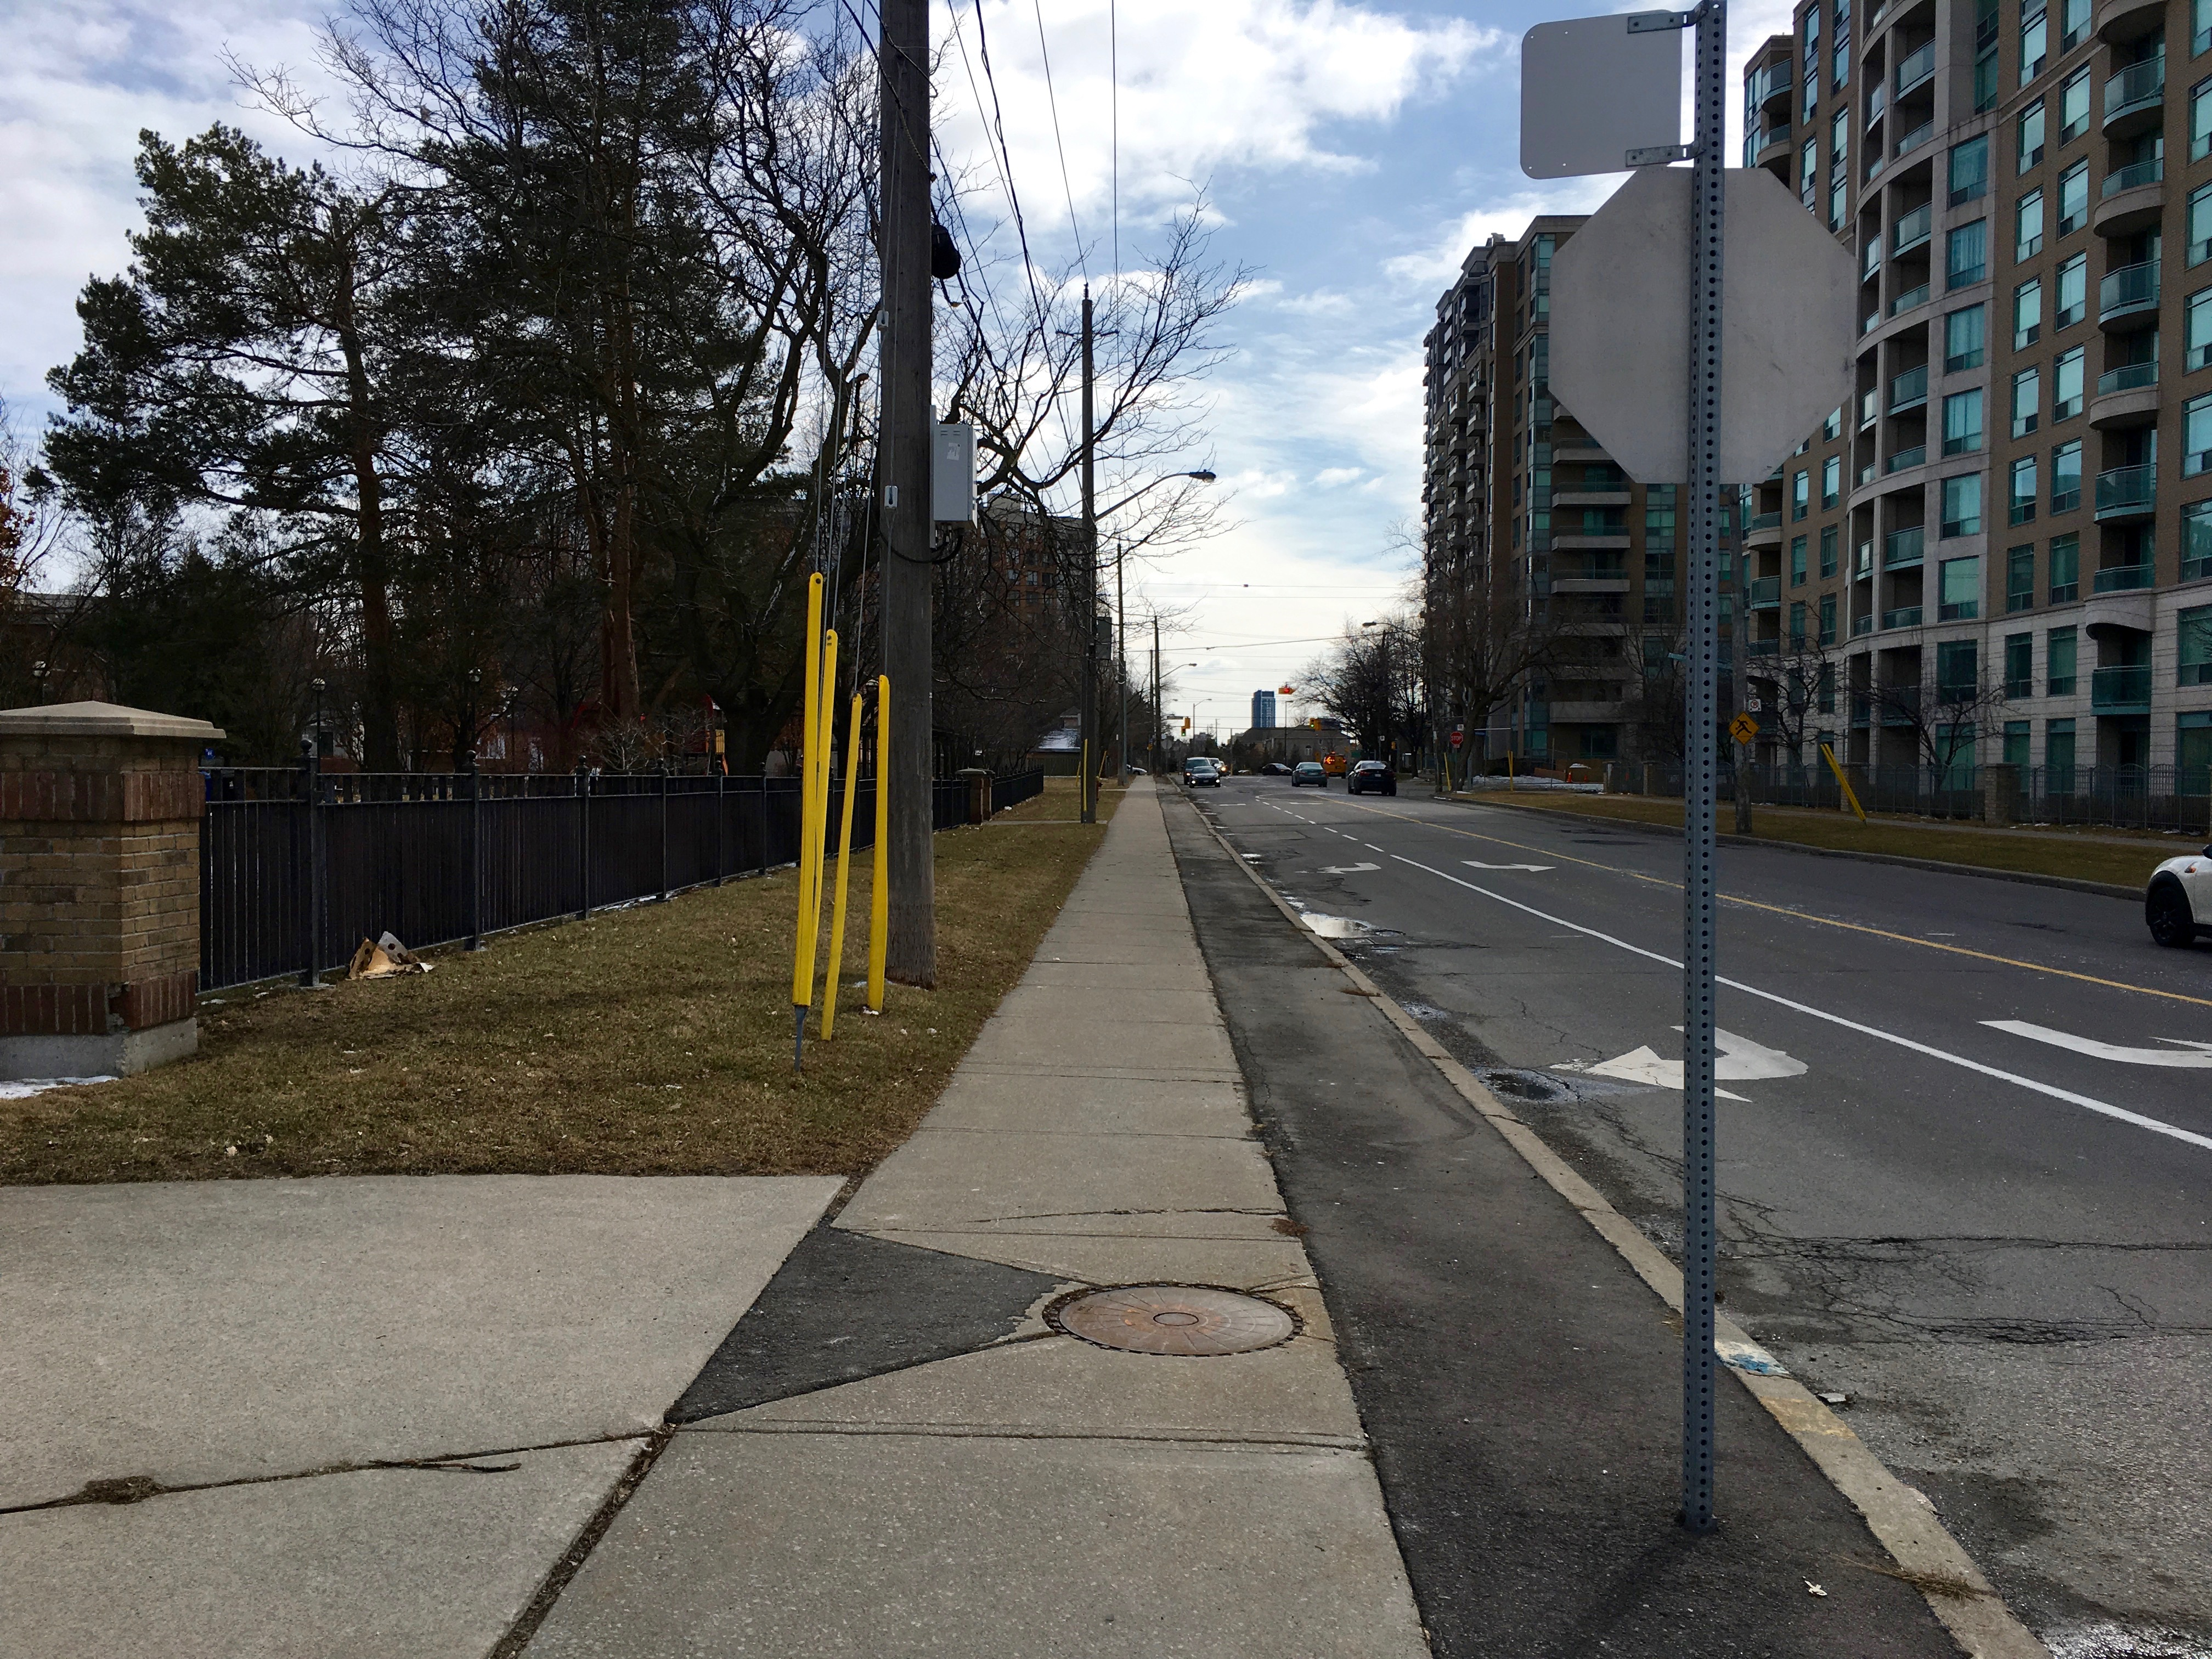 1:21 p.m., March 2, 2018. Facing south on Kenneth Avenue, the street north of Doris Avenue.